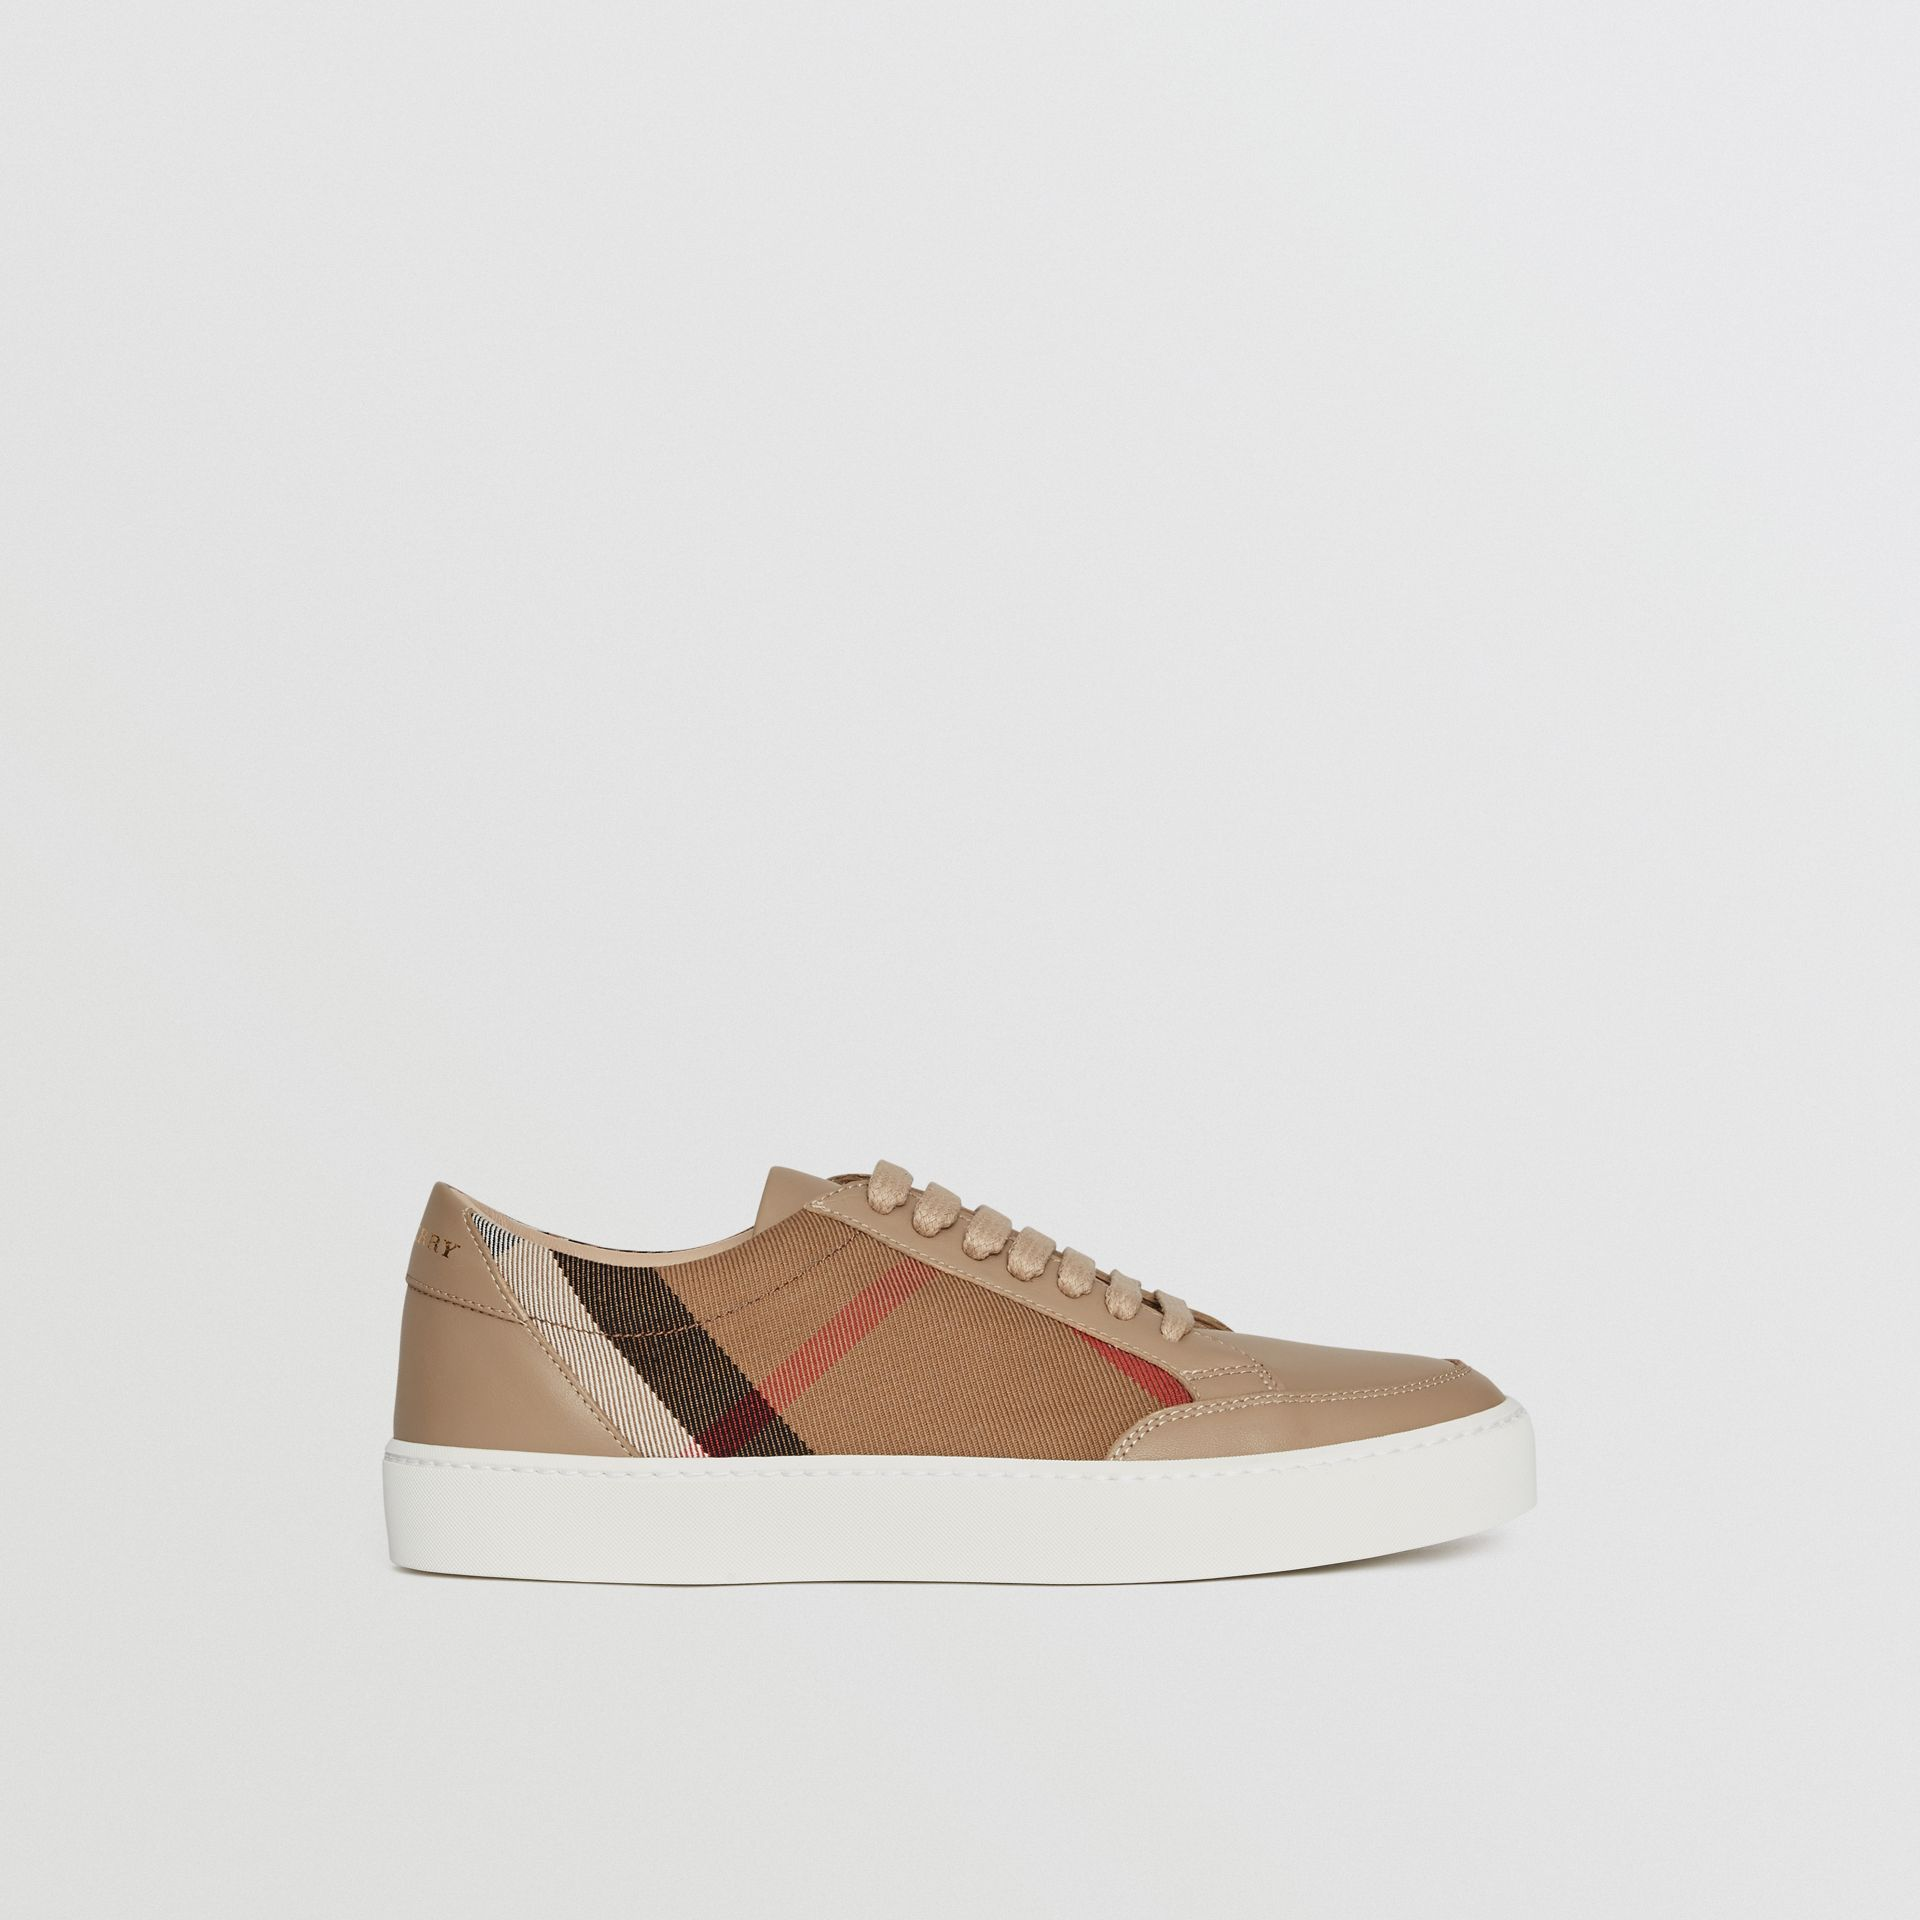 Check Detail Leather Sneakers in House Check/ Nude - Women | Burberry Singapore - gallery image 5